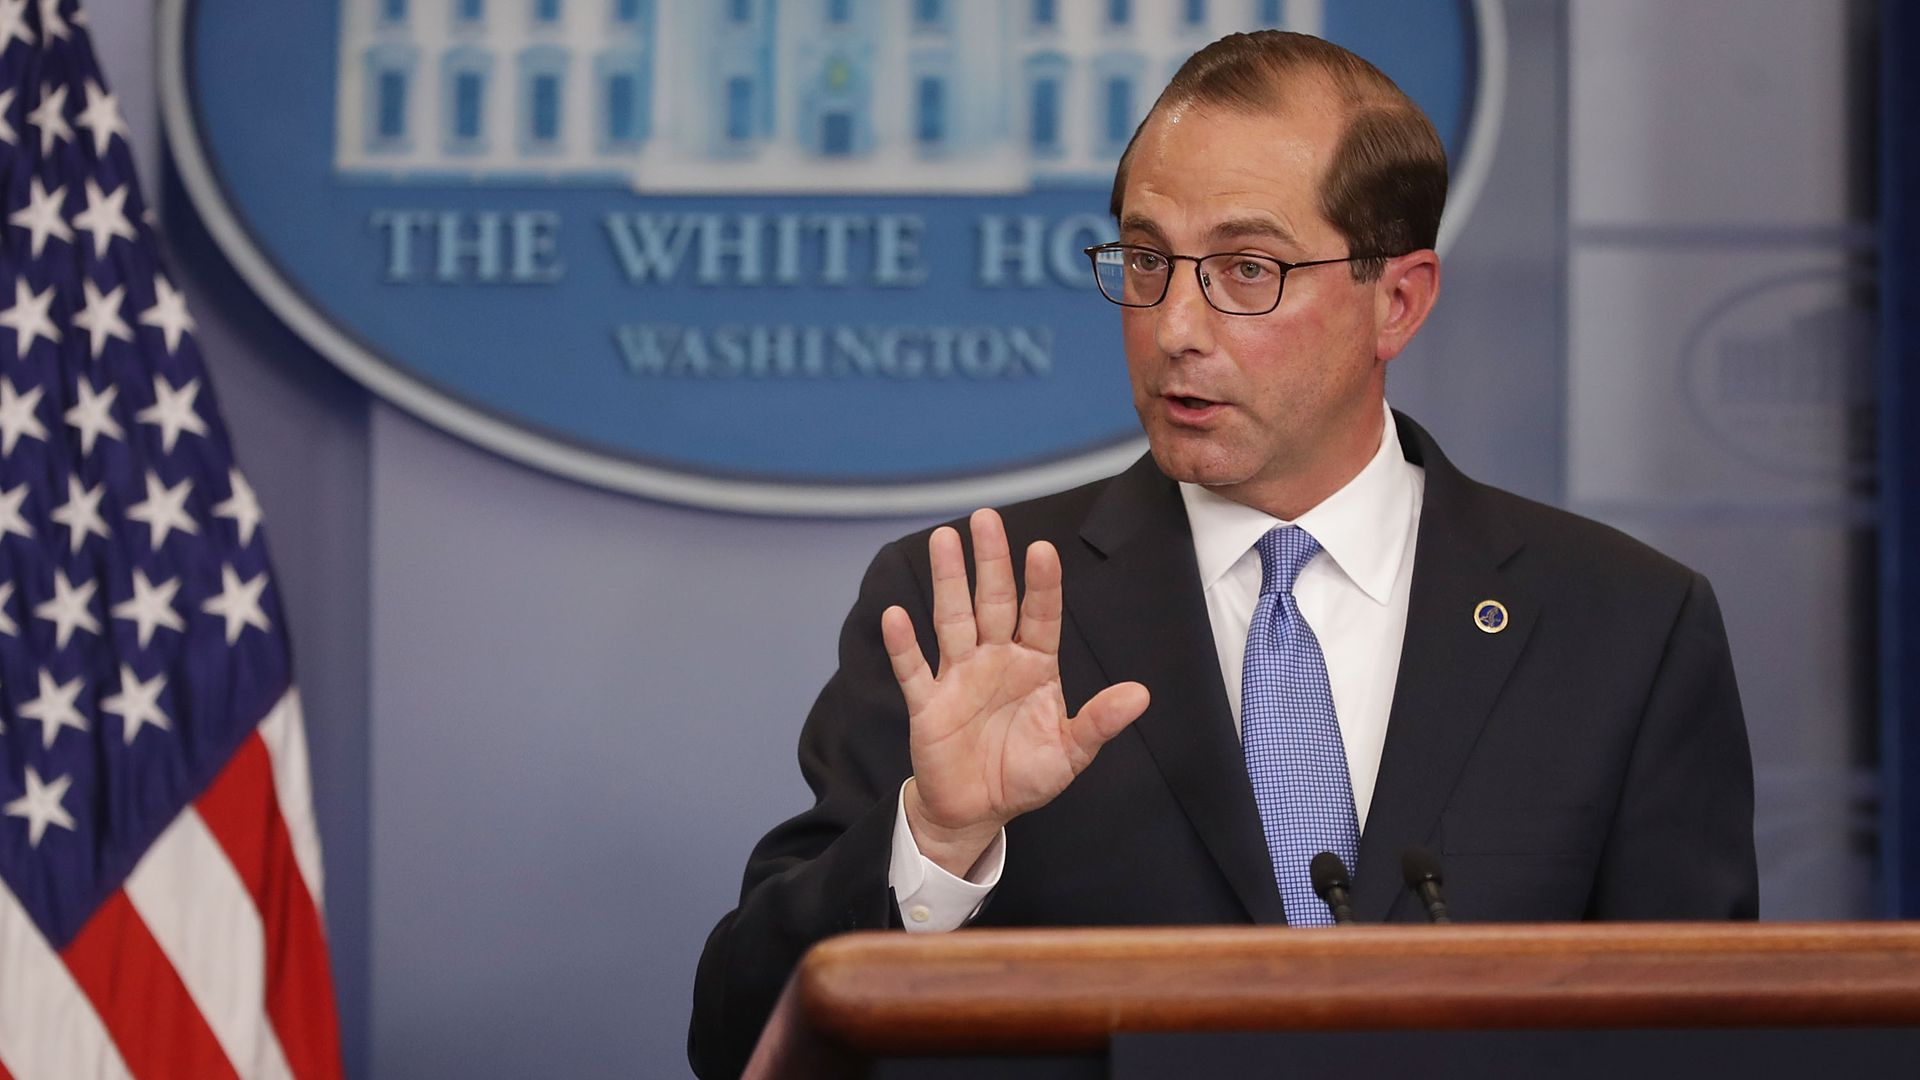 Alex Azar at WH podium